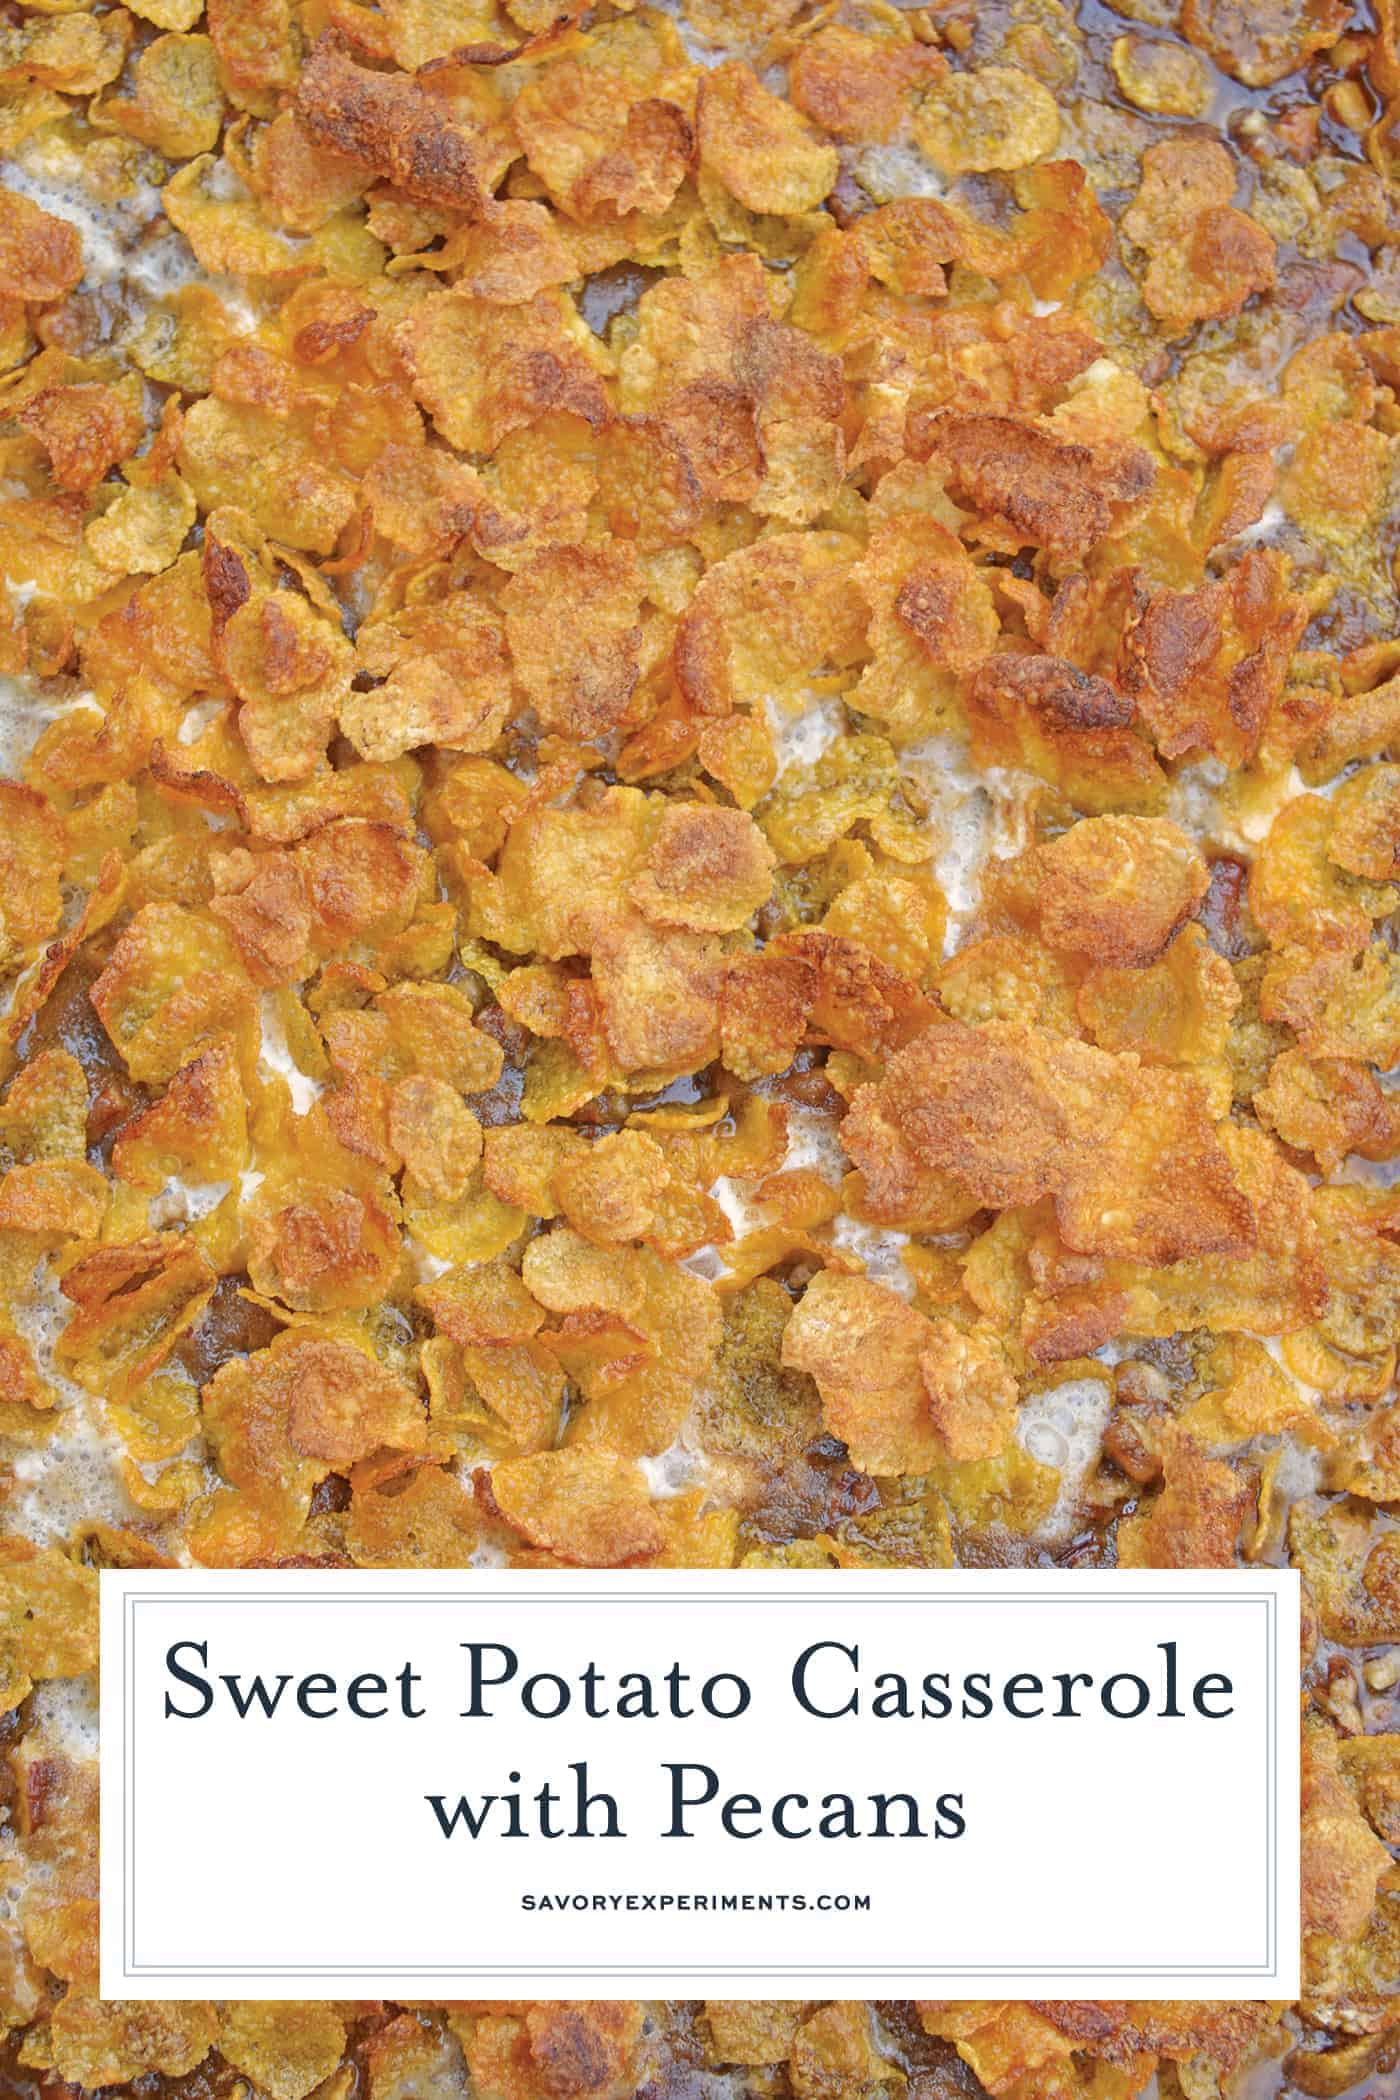 Sweet Potato Casserole with Pecans is the ultimate sweet potato souffle recipe using fresh sweet potatoes, pecan topping and marshmallows. #sweetpotatocasserole #sweetpotatosouffle www.savoryexperiments.com